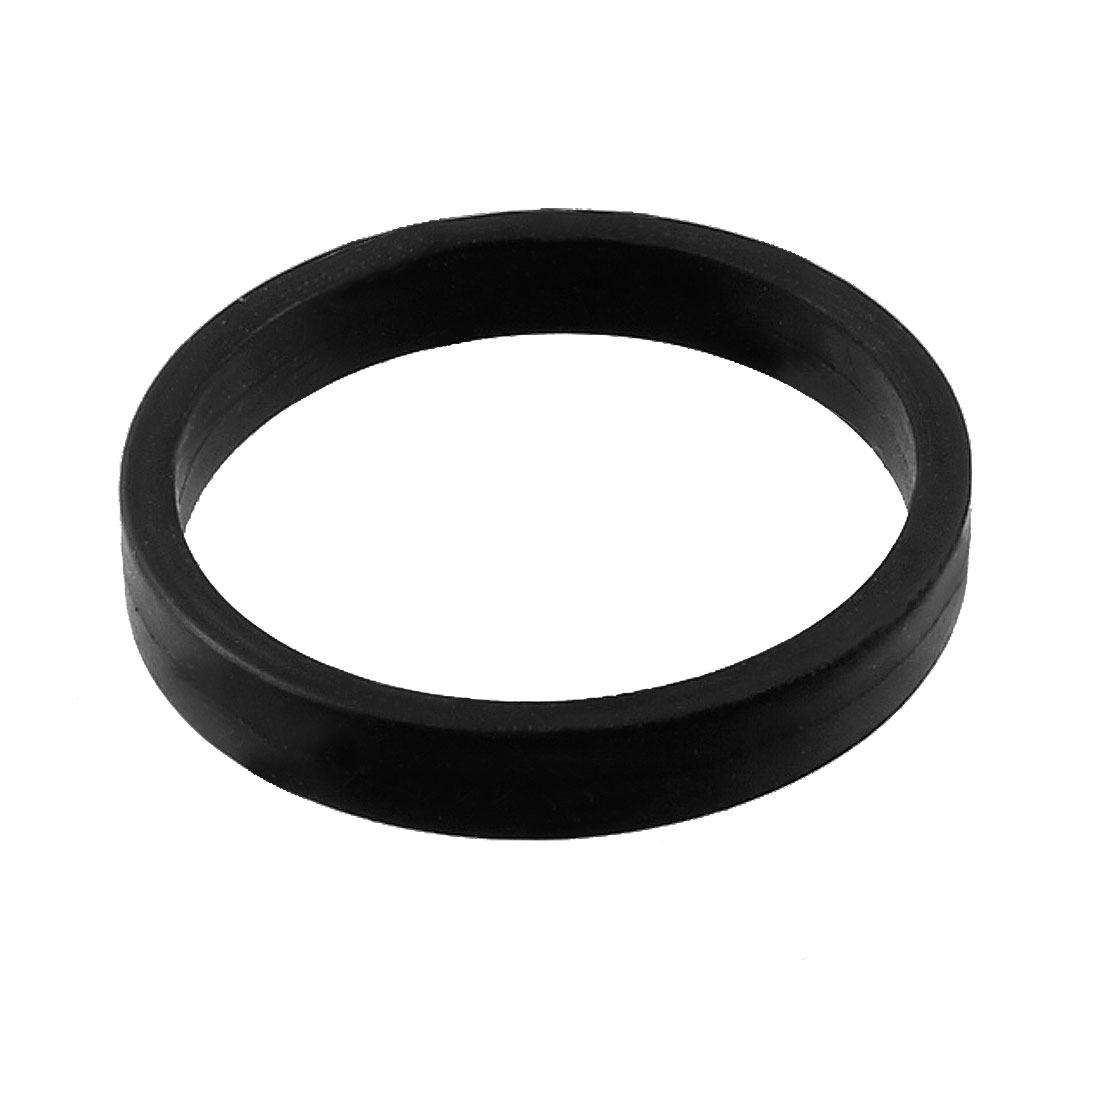 29mm x 26mm x 4mm Black Rubber Oil Seal for SIM-FF-180A Angle Grinder